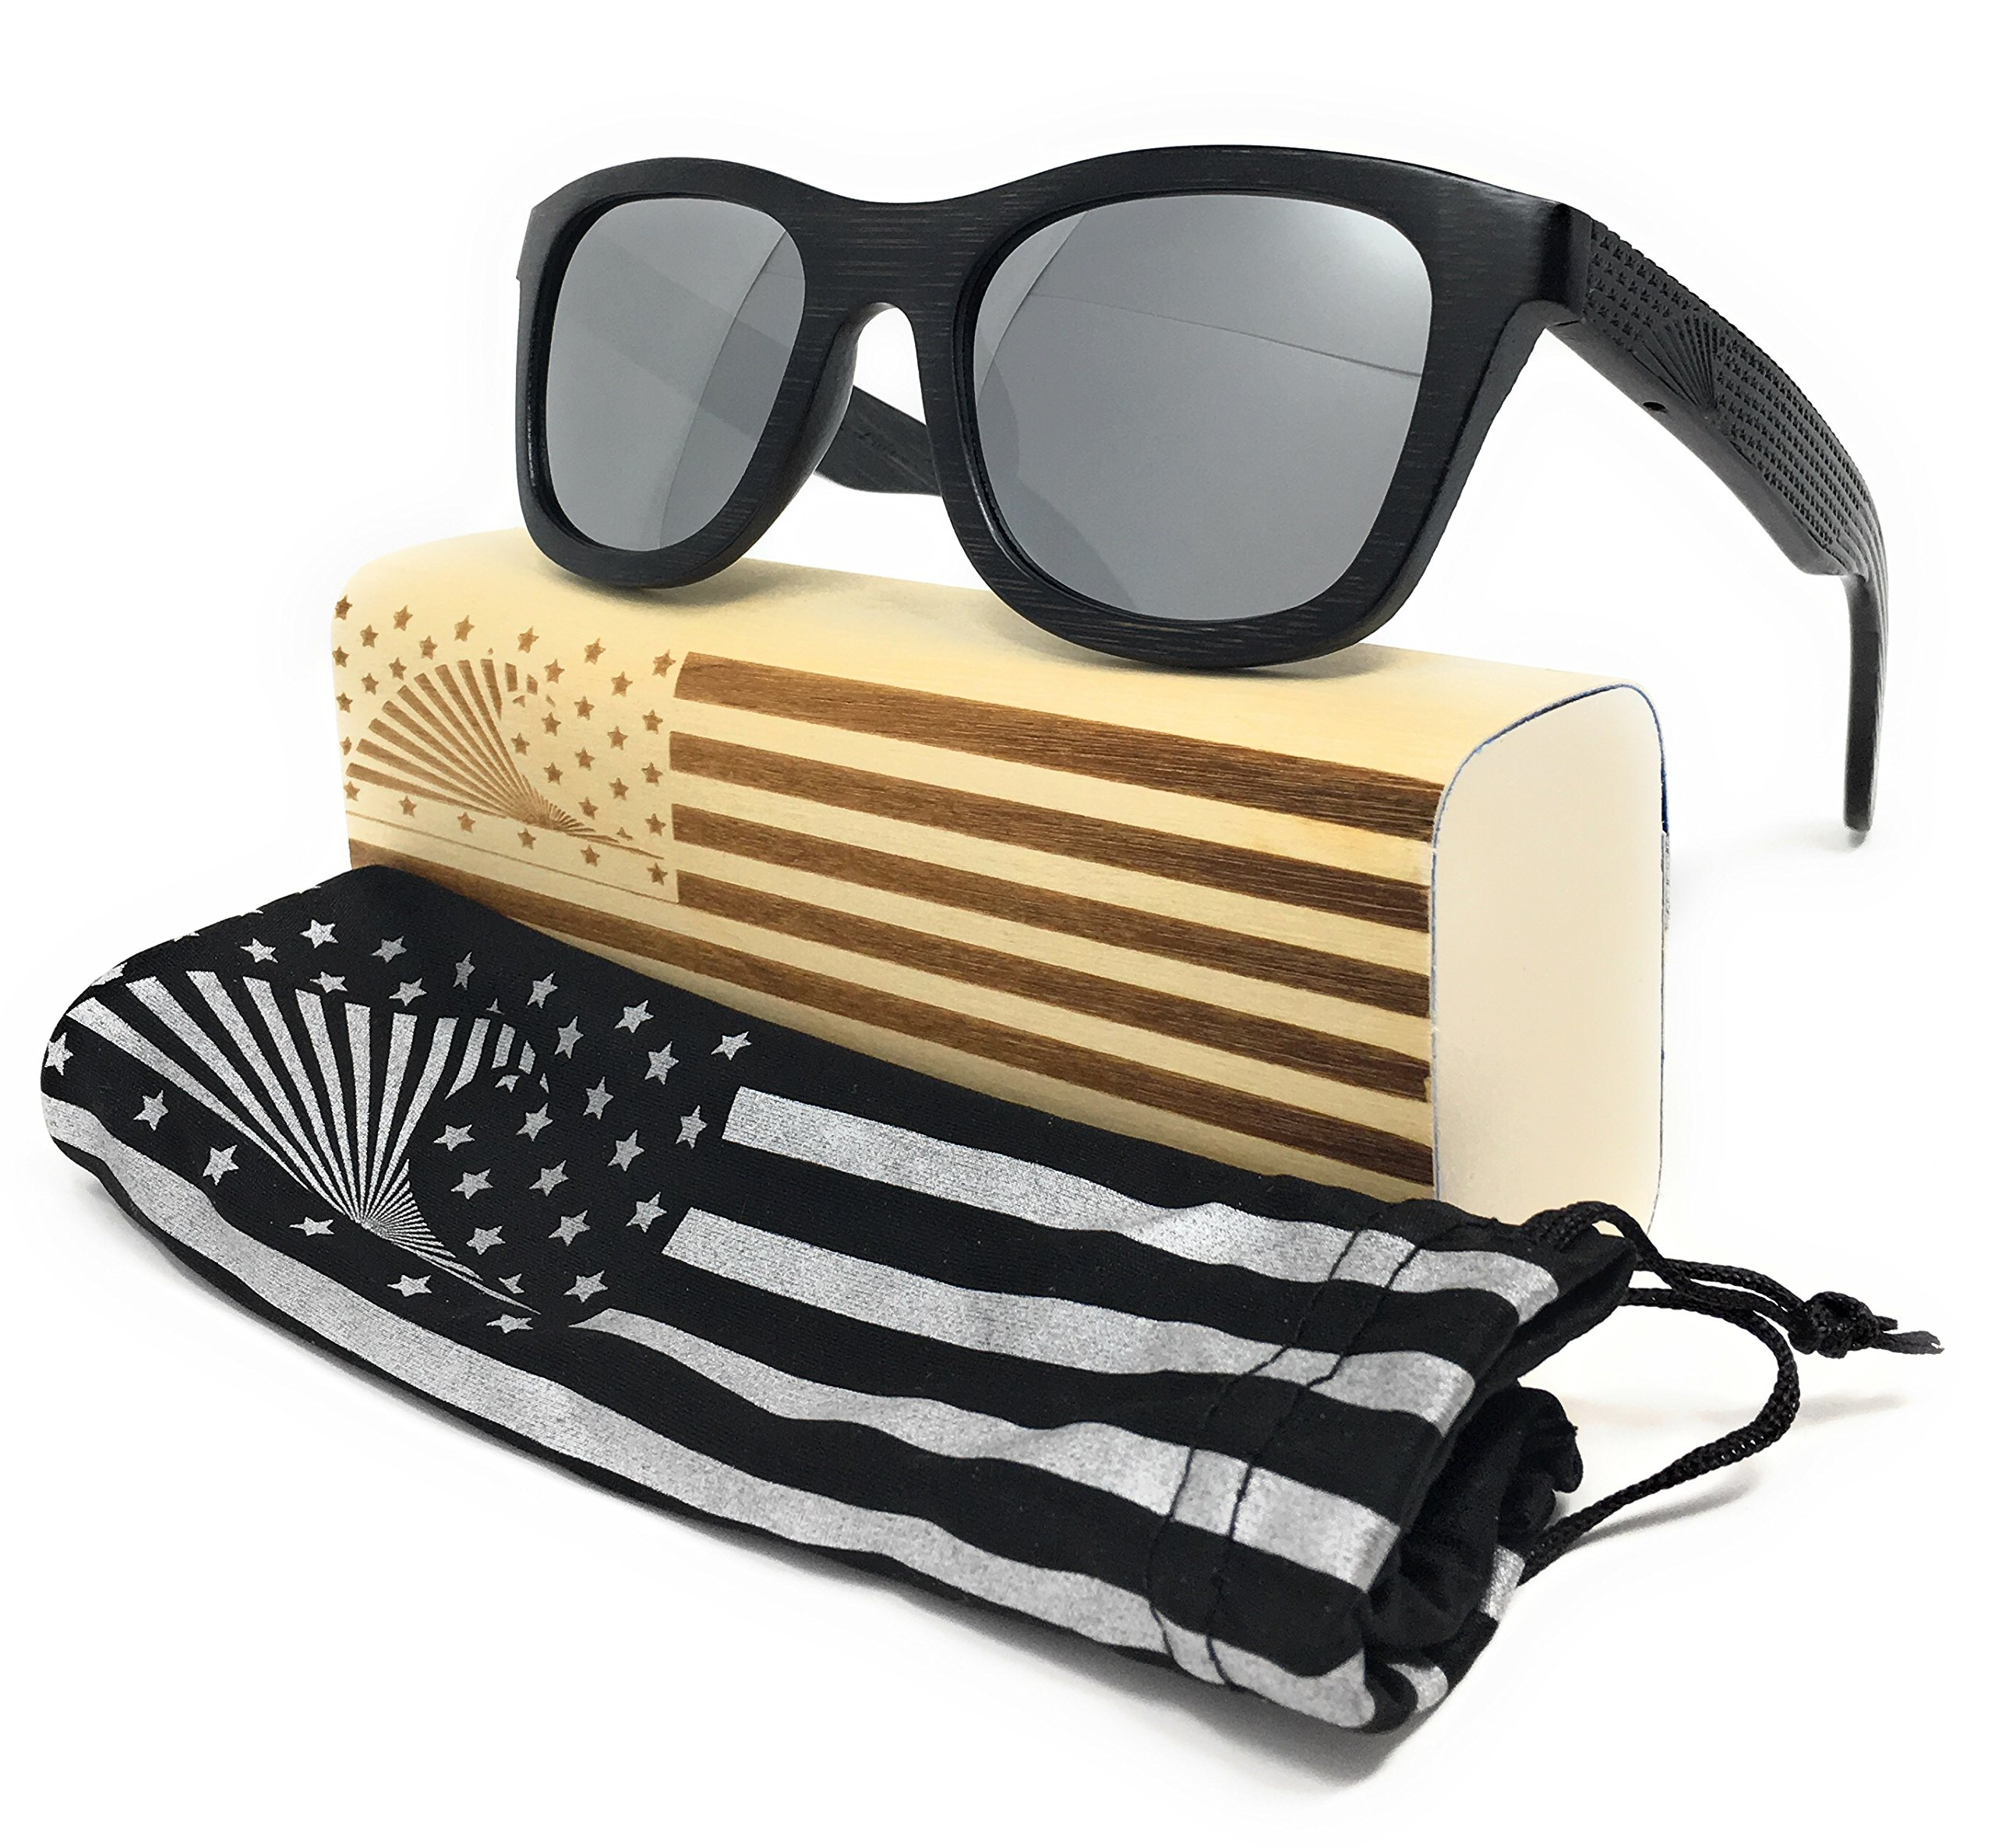 Patriot Shades Polarized Floating Large Frame Bamboo Wood American Flag Wayfarer Sunglasses | LOUDMOUTH PATRIOT (Black, Silver)